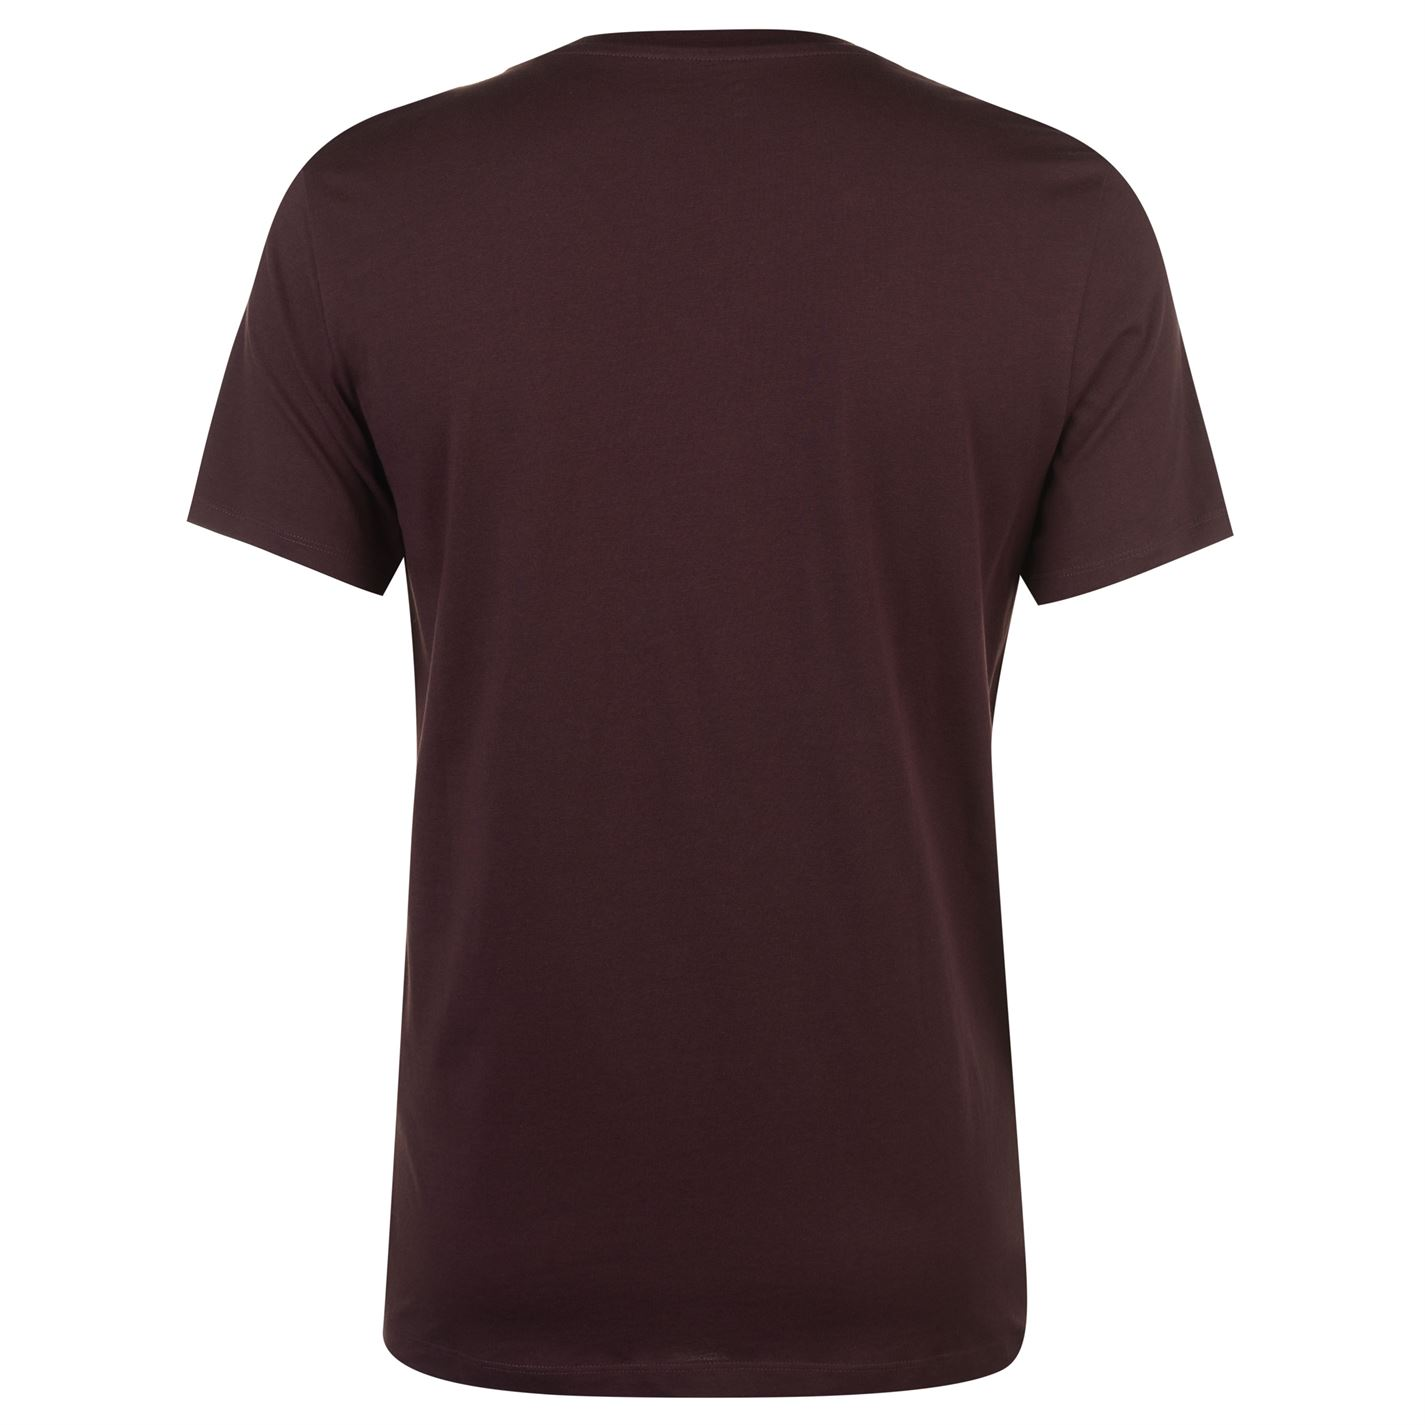 Jack and Jones Tern T Shirt Mens Gents Crew Neck Tee Top Short Sleeve